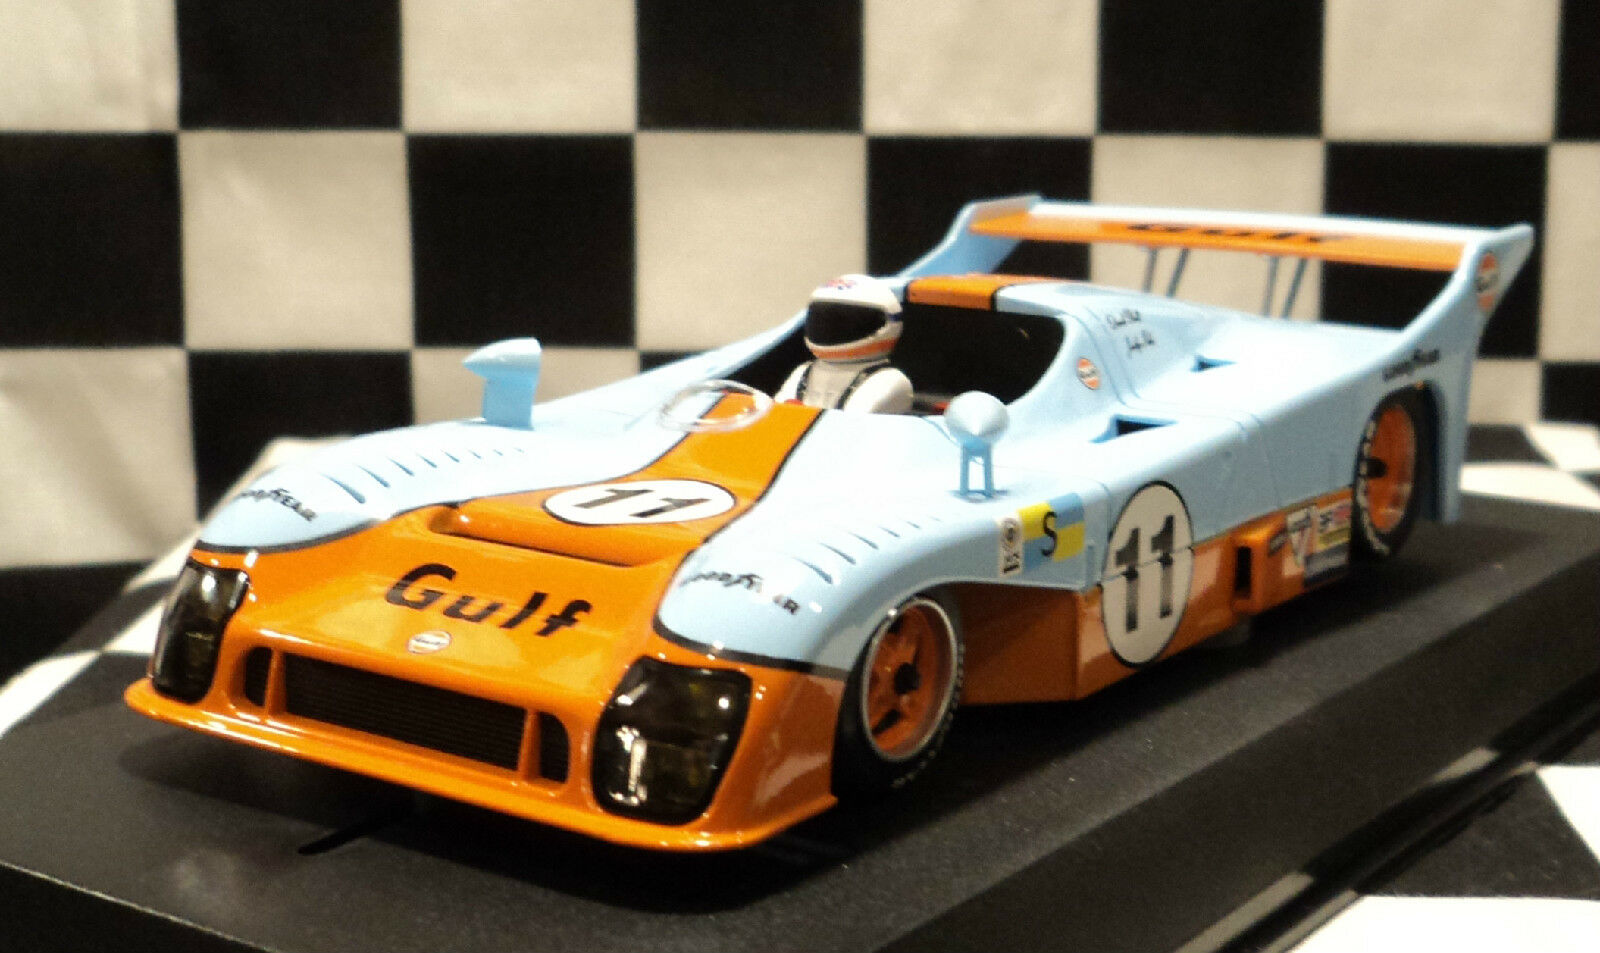 AVANT SLOT 51202 Mirage Gr.8 du Mans winner 1975 GULF  11 Brand New 1 32 Slot Car